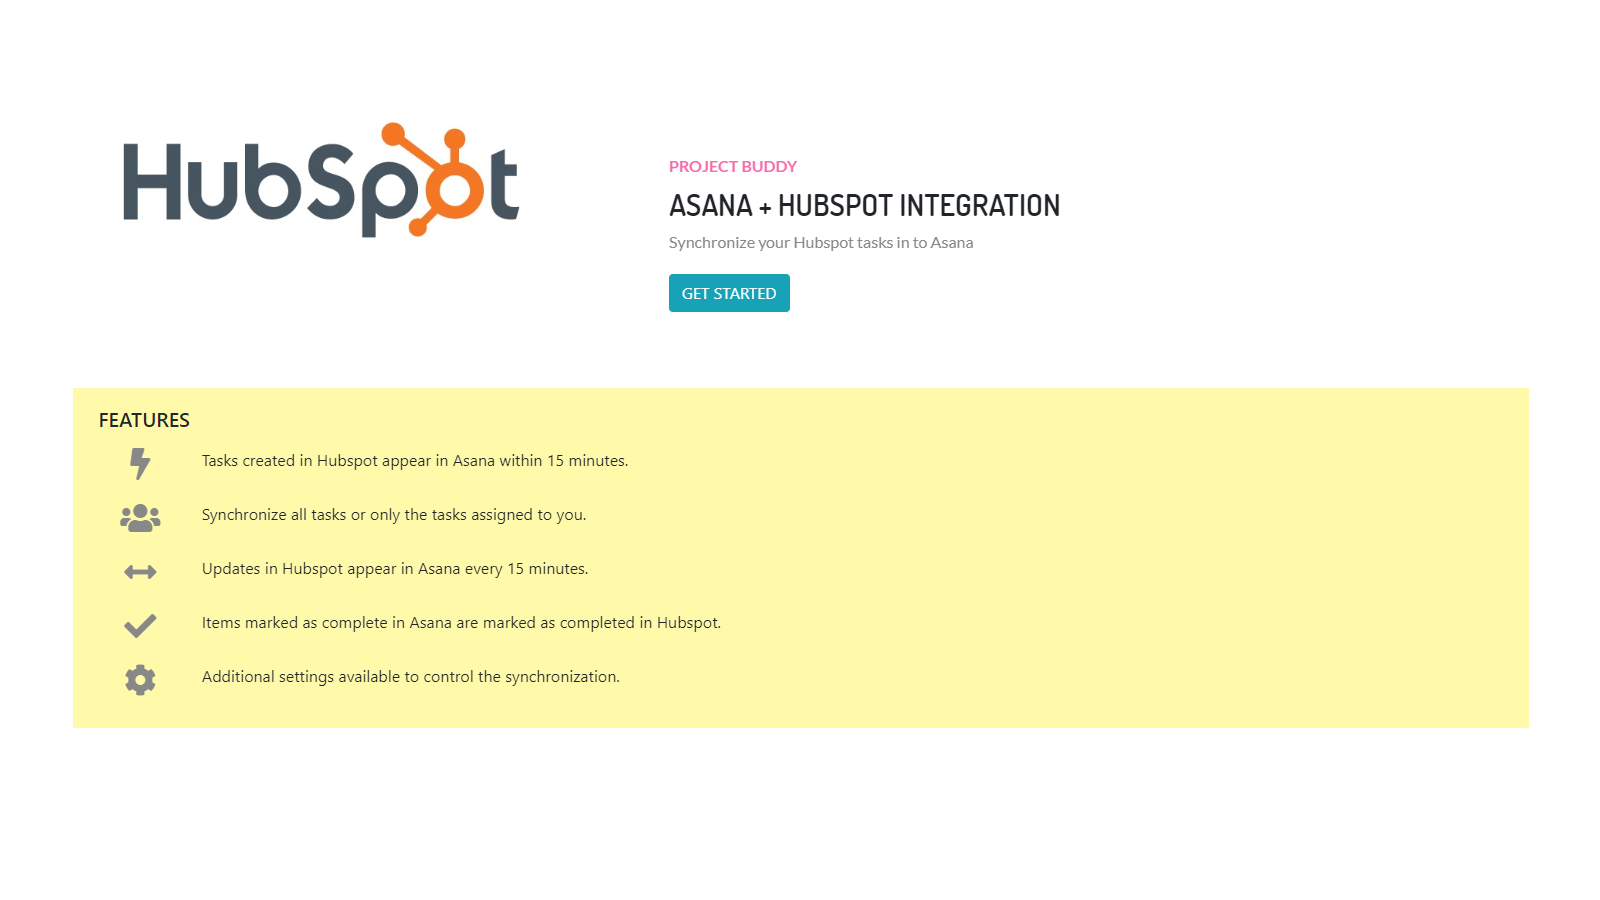 All The Tasks project buddy hubspot integration   connect them today